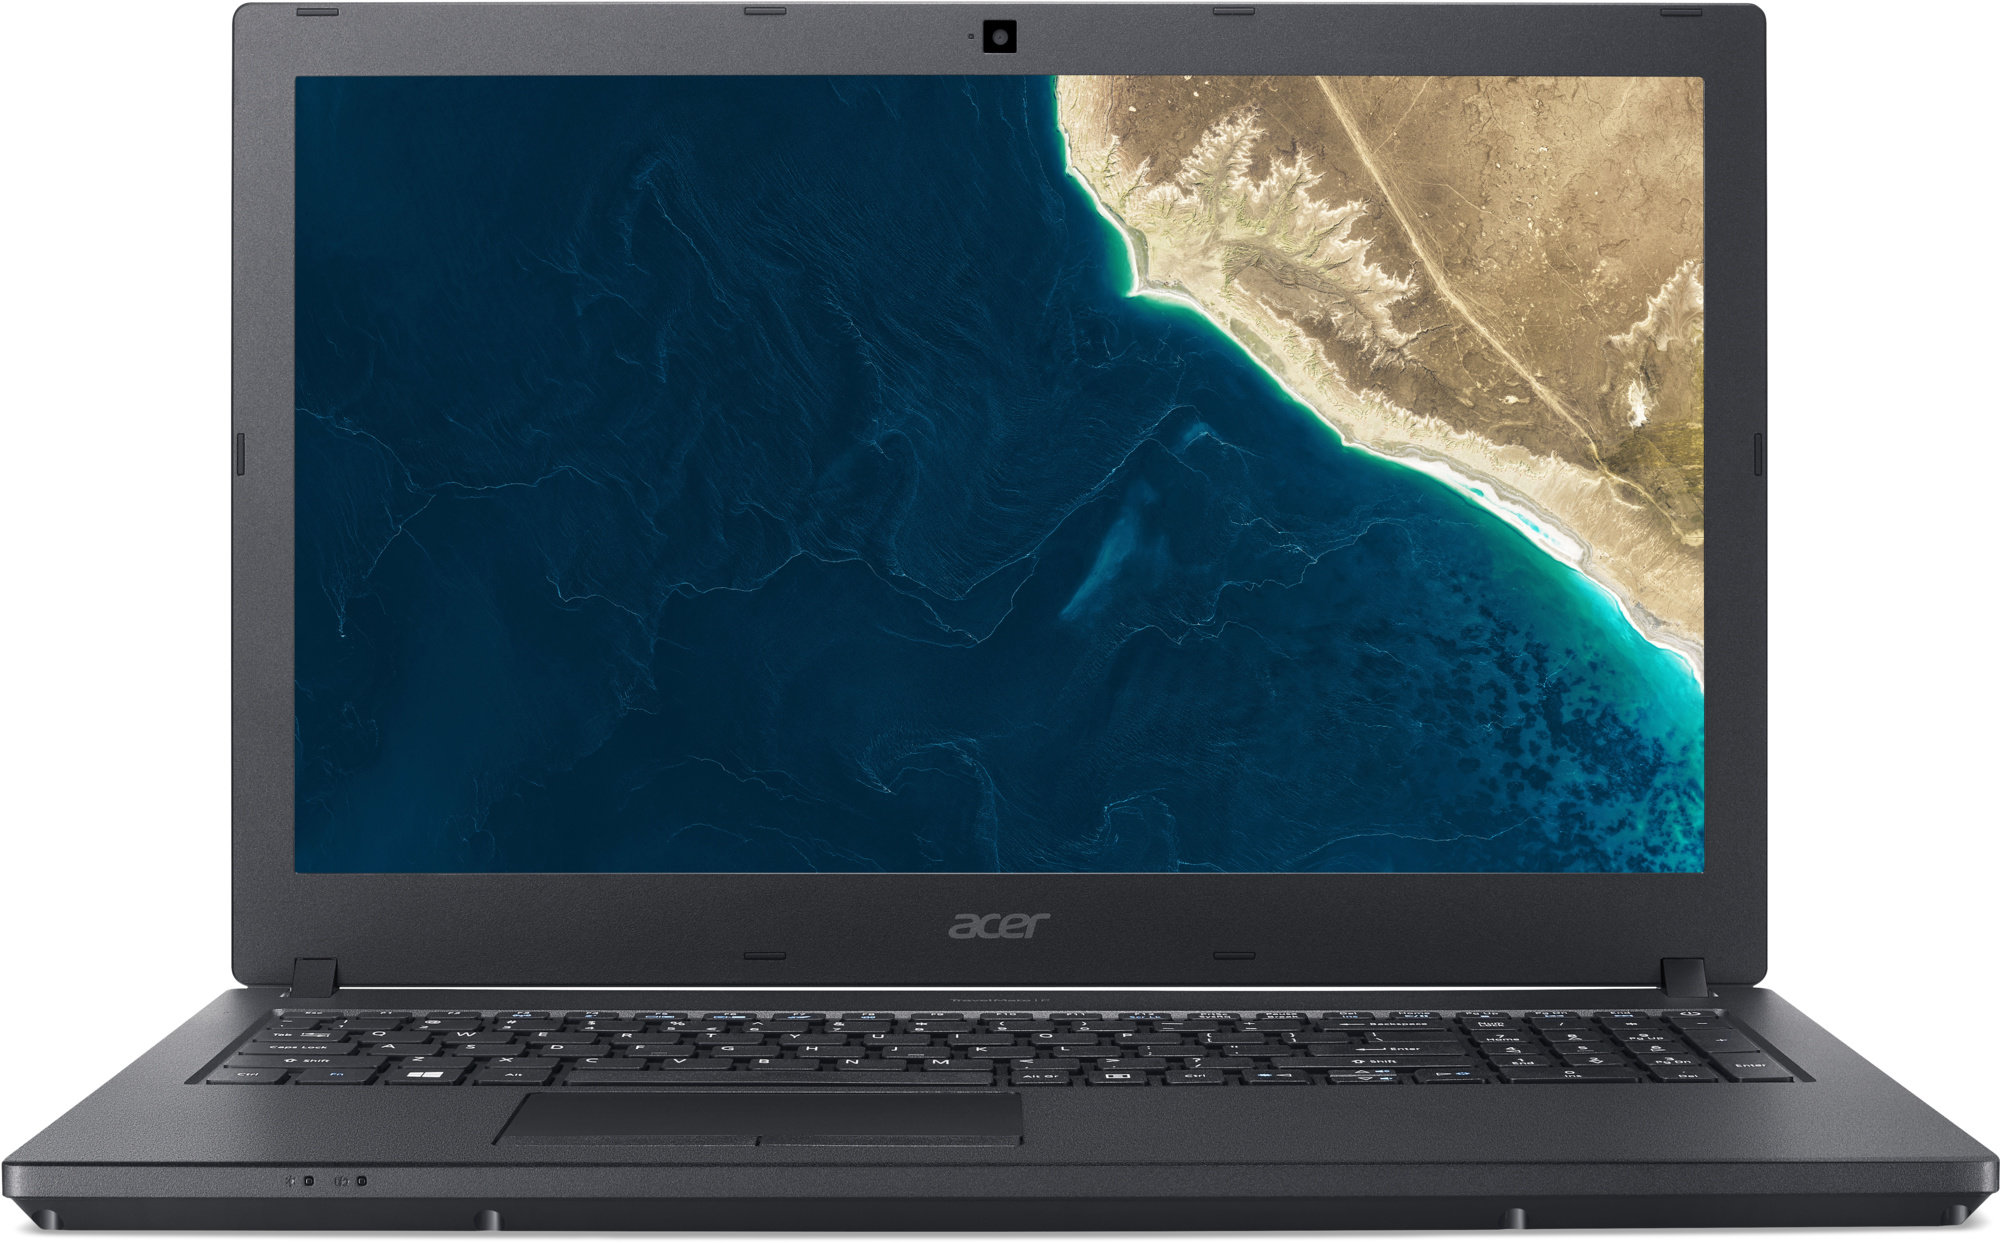 "AcerTravelMate (P2510-M-38PG) i3-7100U/4GB+N/256GB SSD+N/HD Graphics/15.6"" FHD IPS LED matný/BT/W10 Pro/Black"